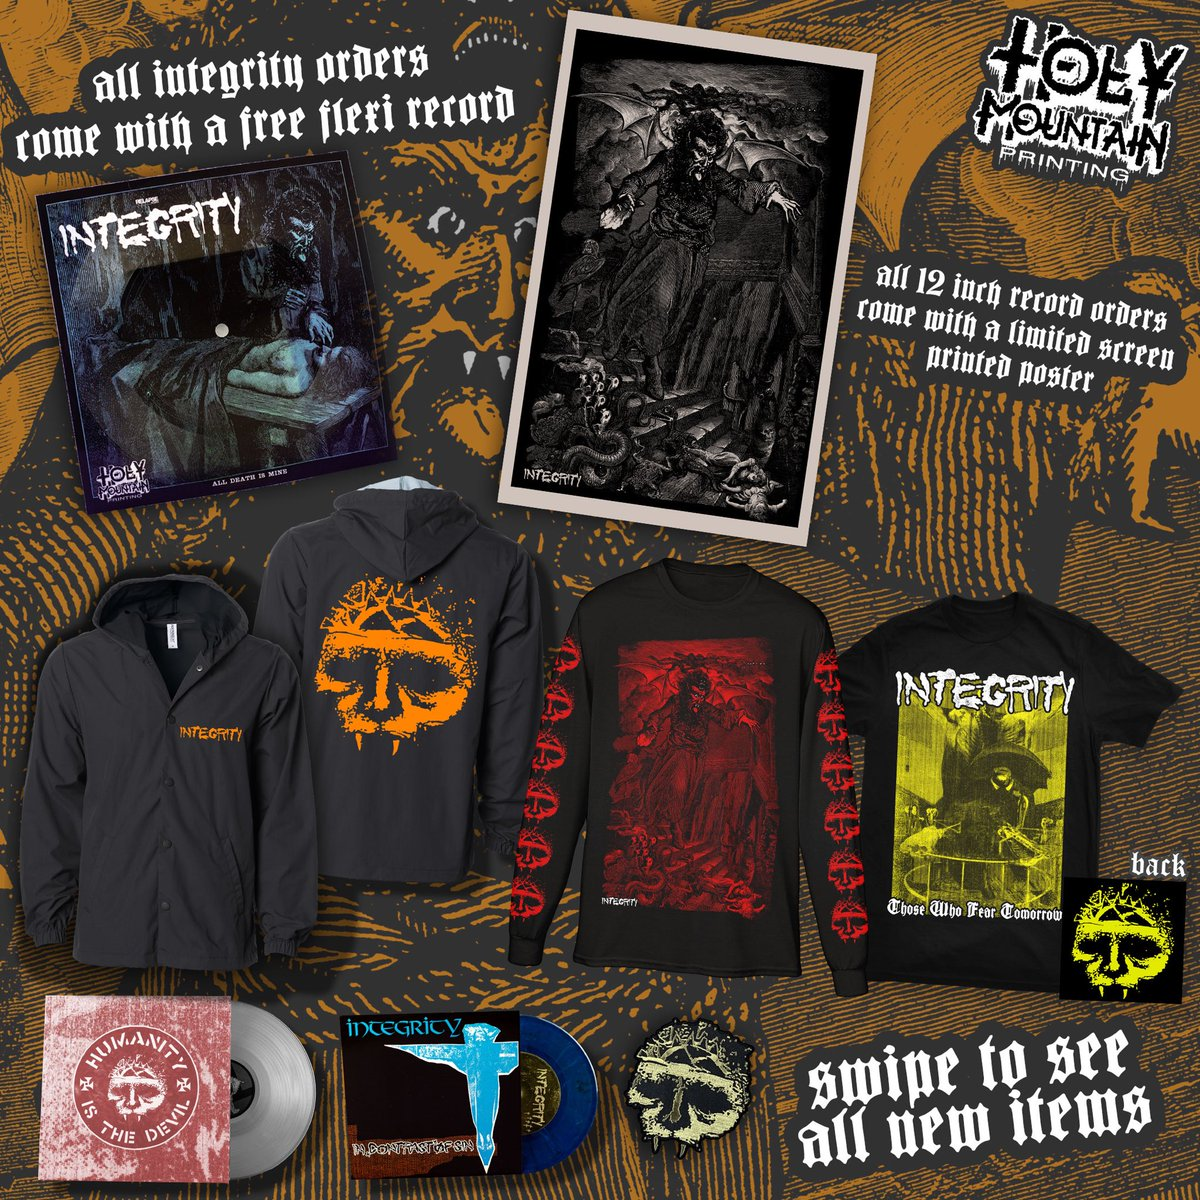 New @INTEGRITY_HT merch and music up at @holymountainnc. Get a FREE flexi or Poster with order!